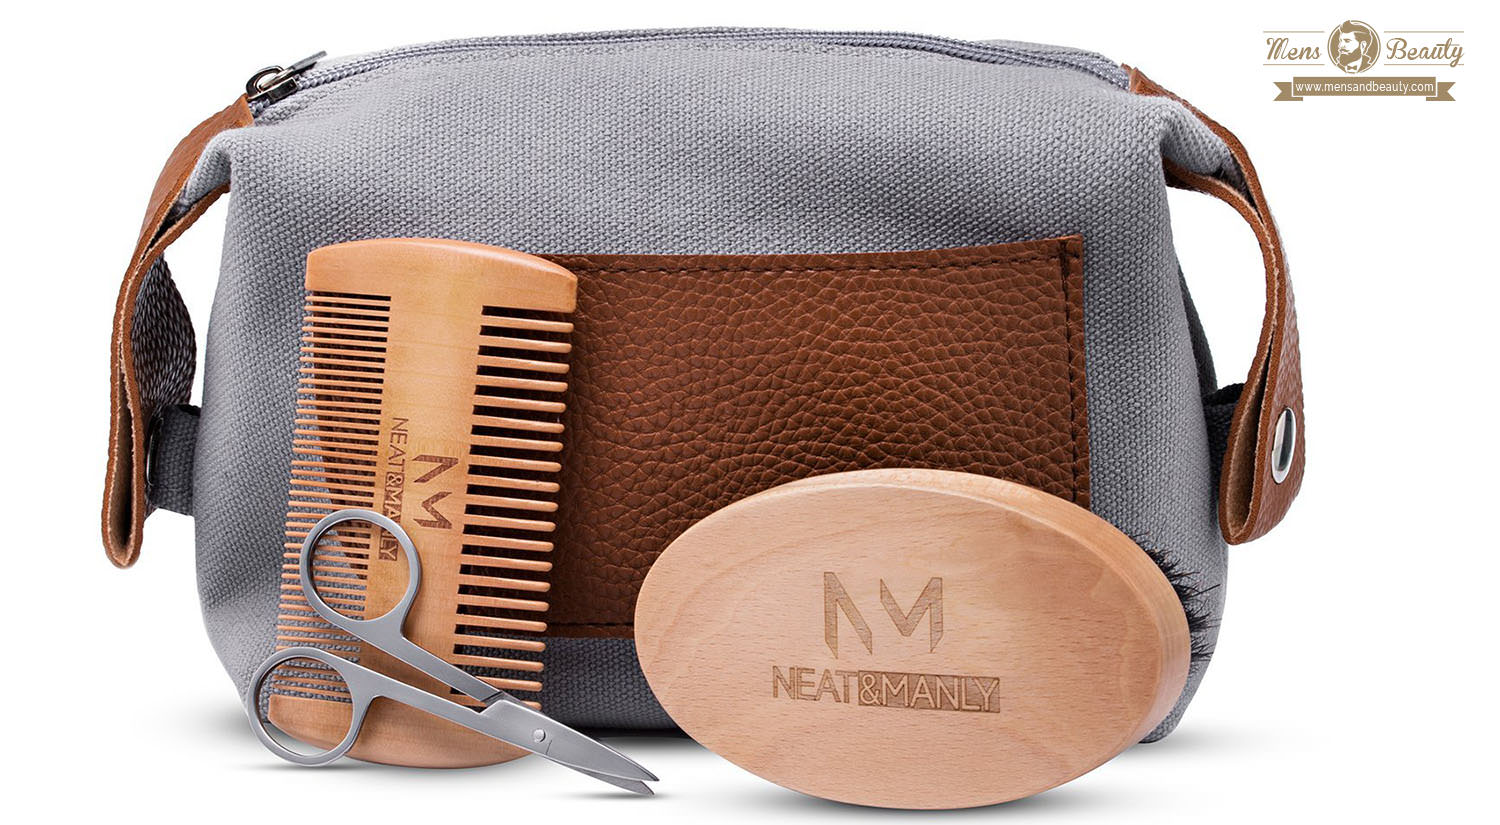 mejores productos barba bigote hombre kit nean mainly